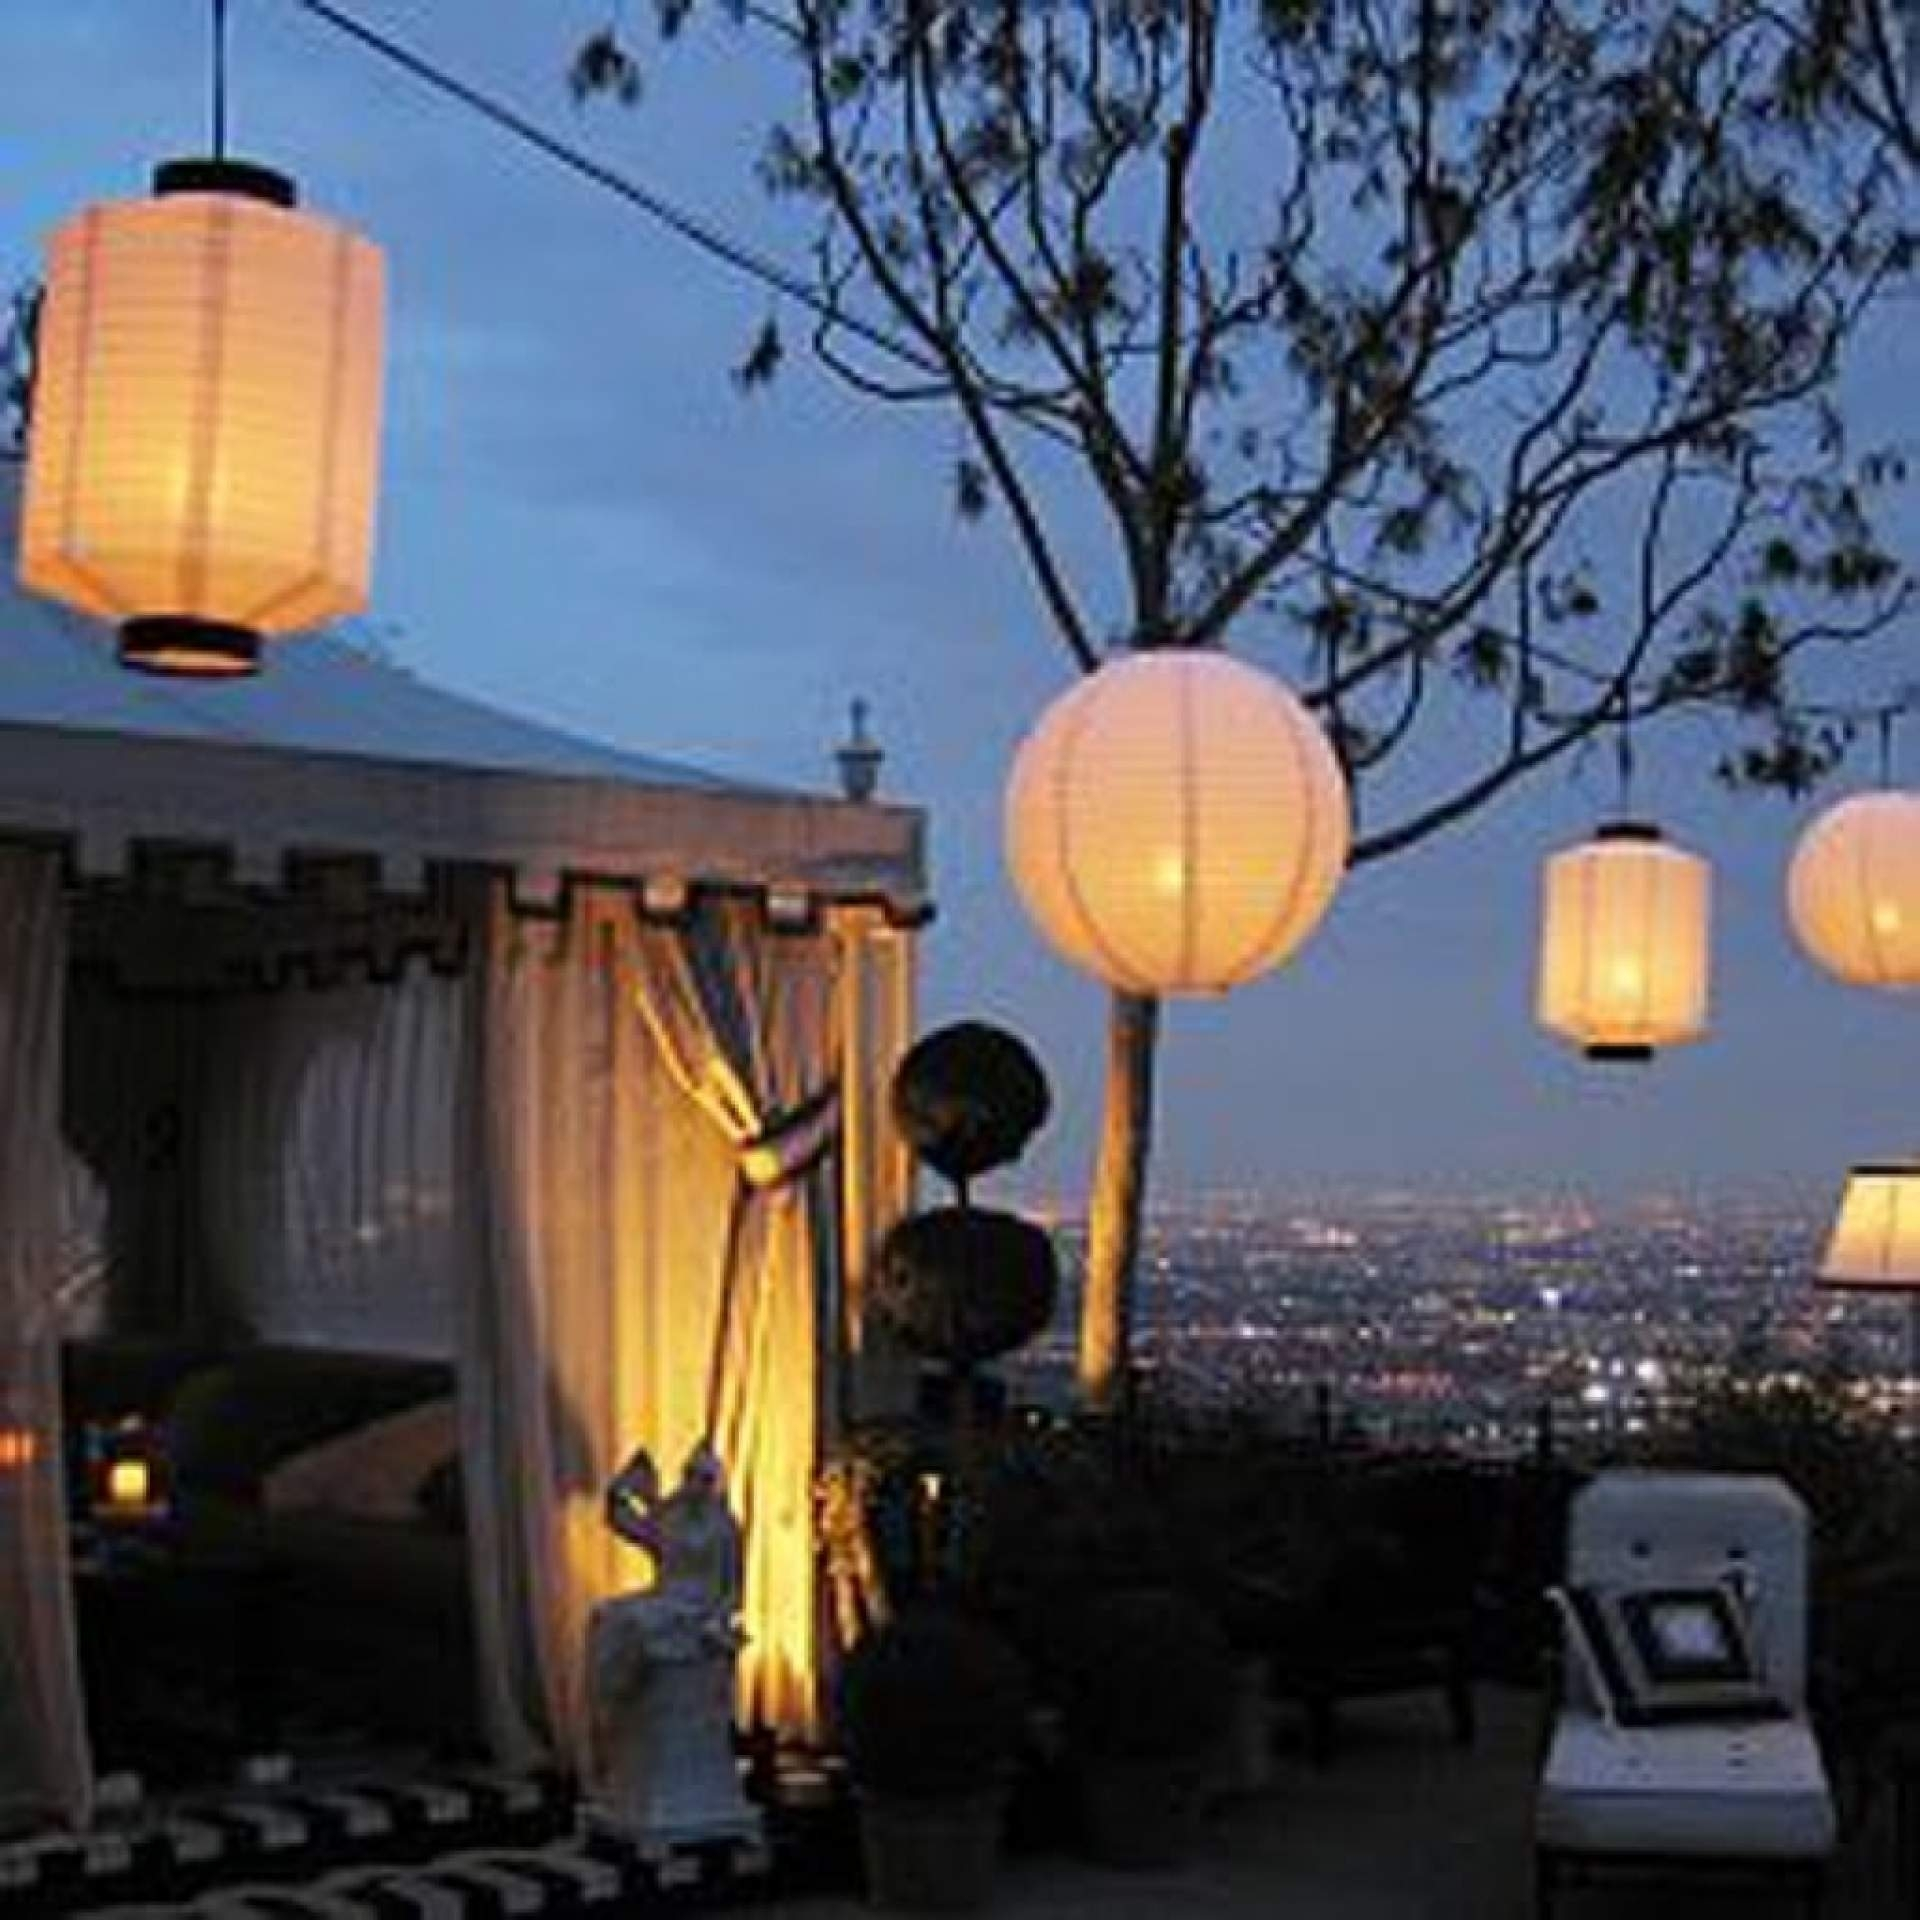 Outdoor Lanterns For Patio with regard to Outdoor Lanterns For Patio (Image 14 of 20)